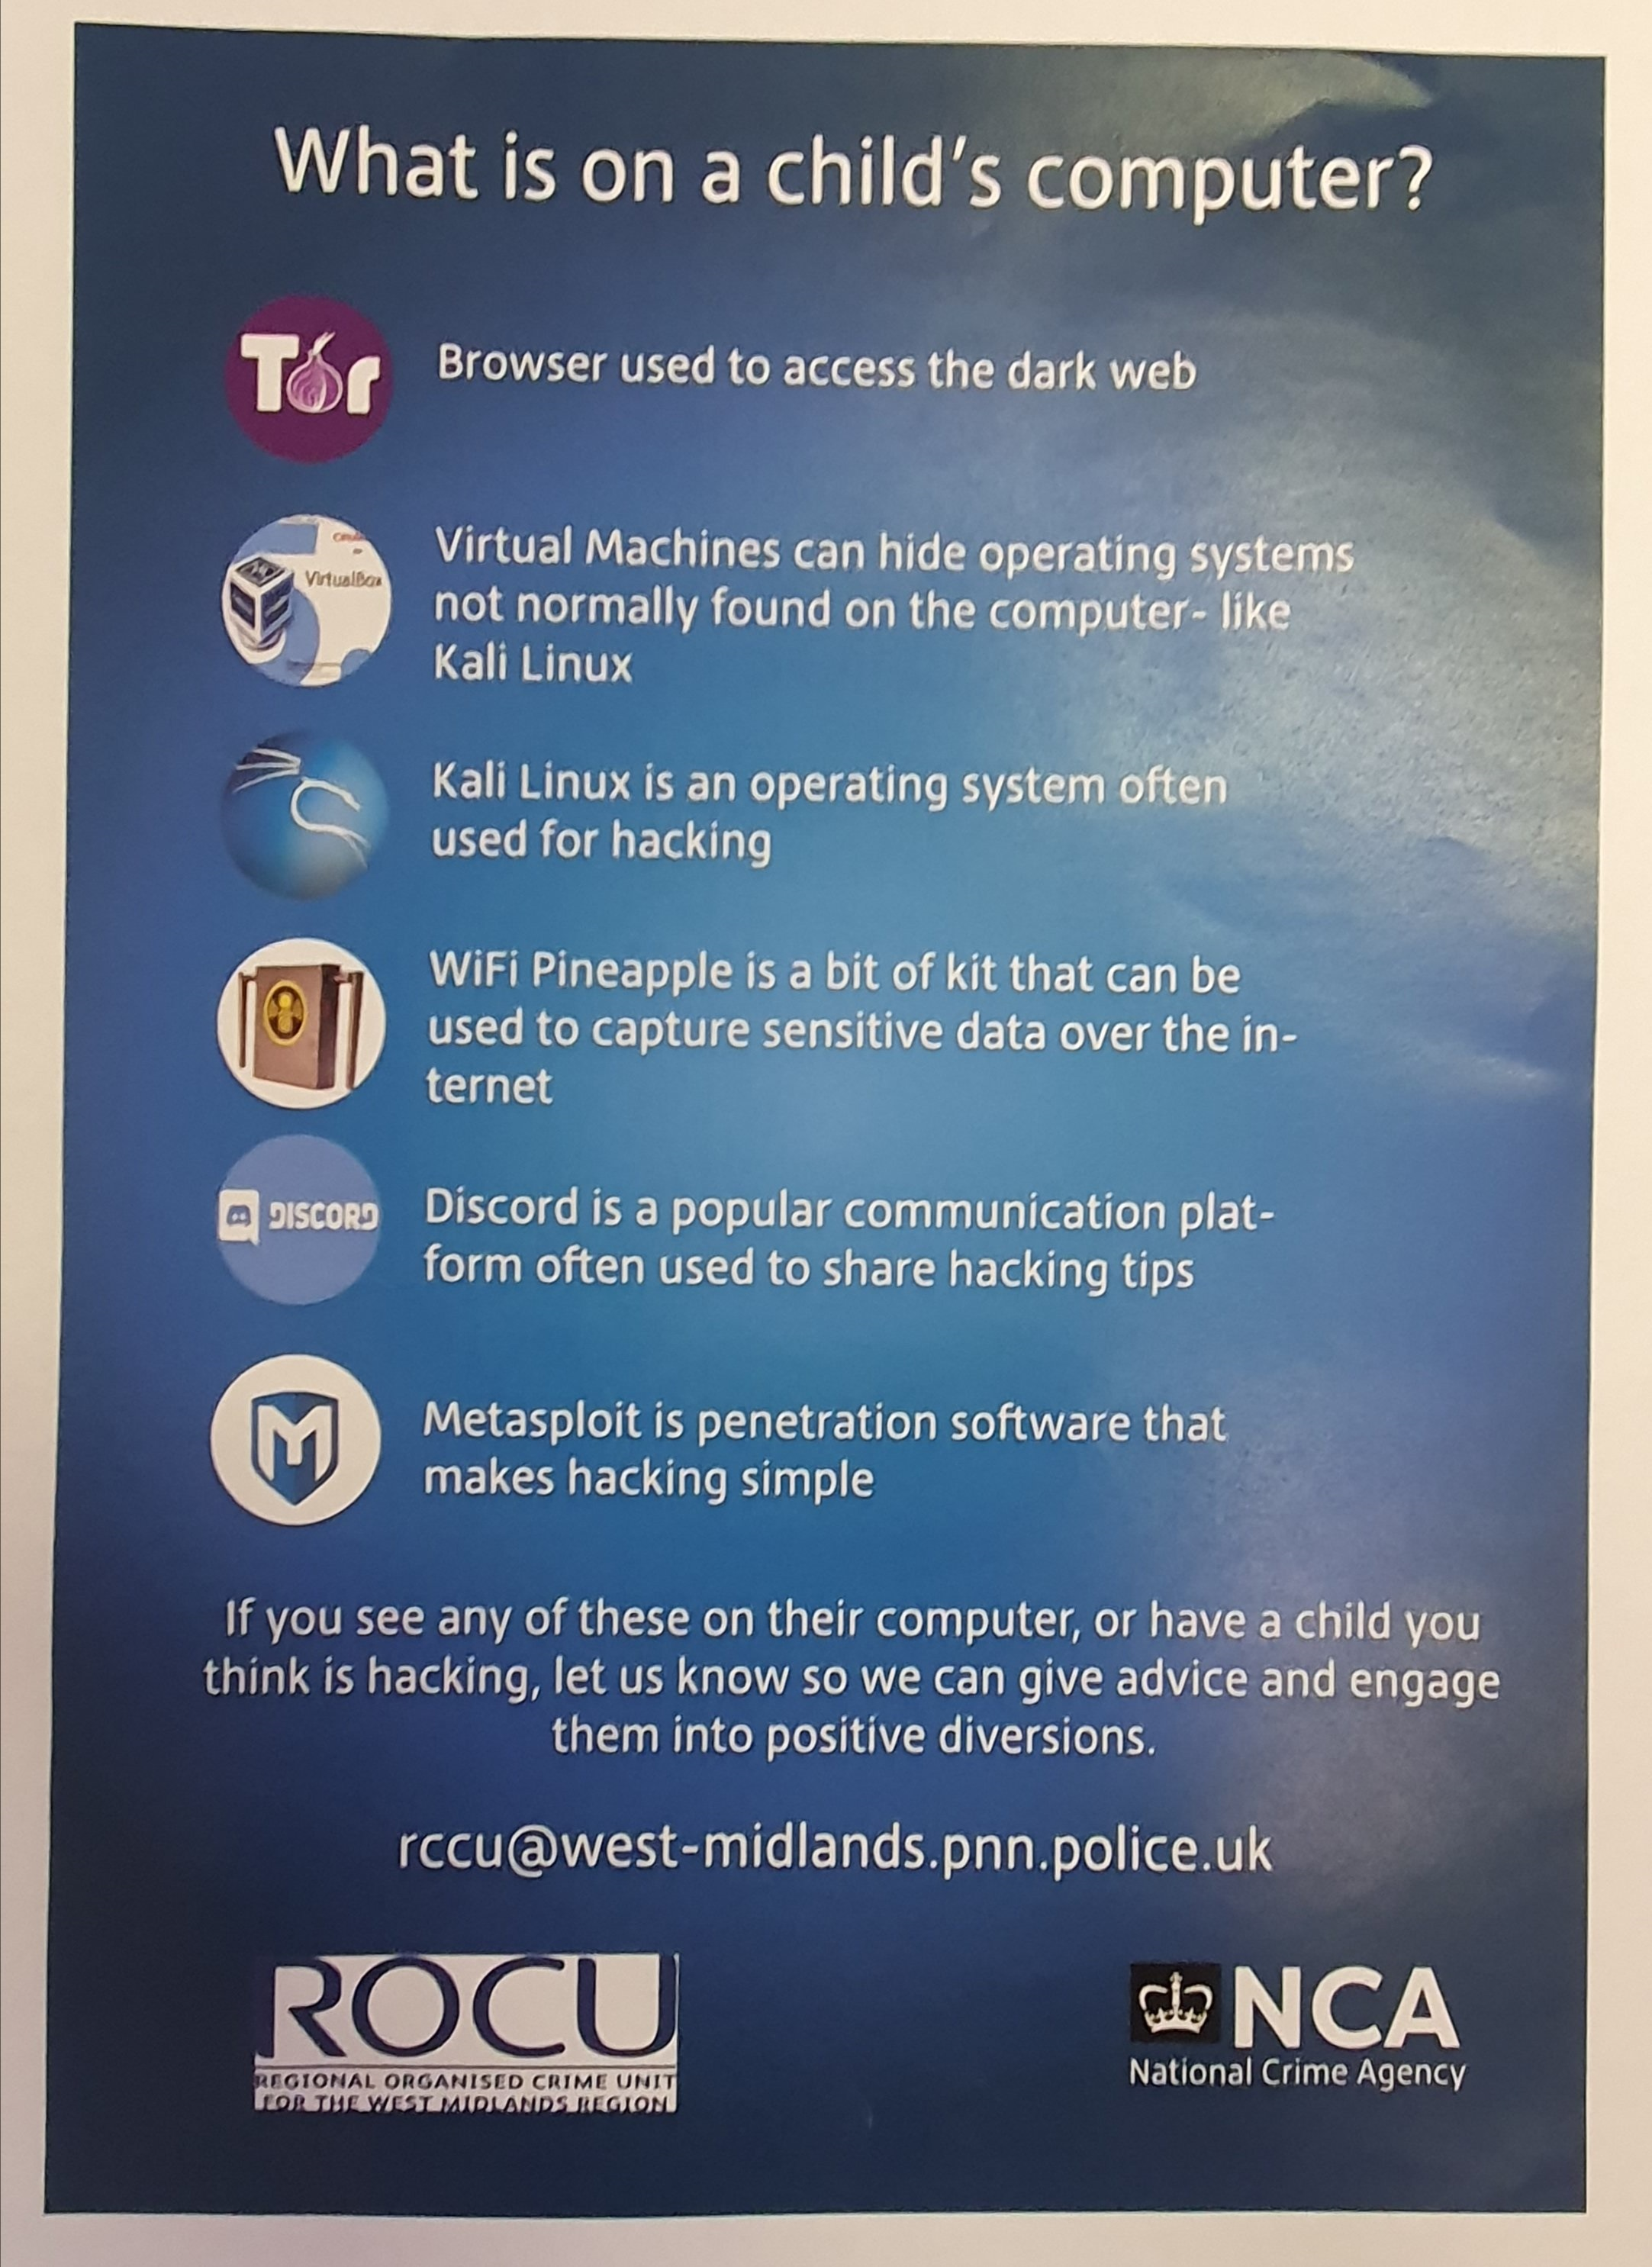 Kids Using Kali Linux Are The Next Generation Hackers Uk Police Warn